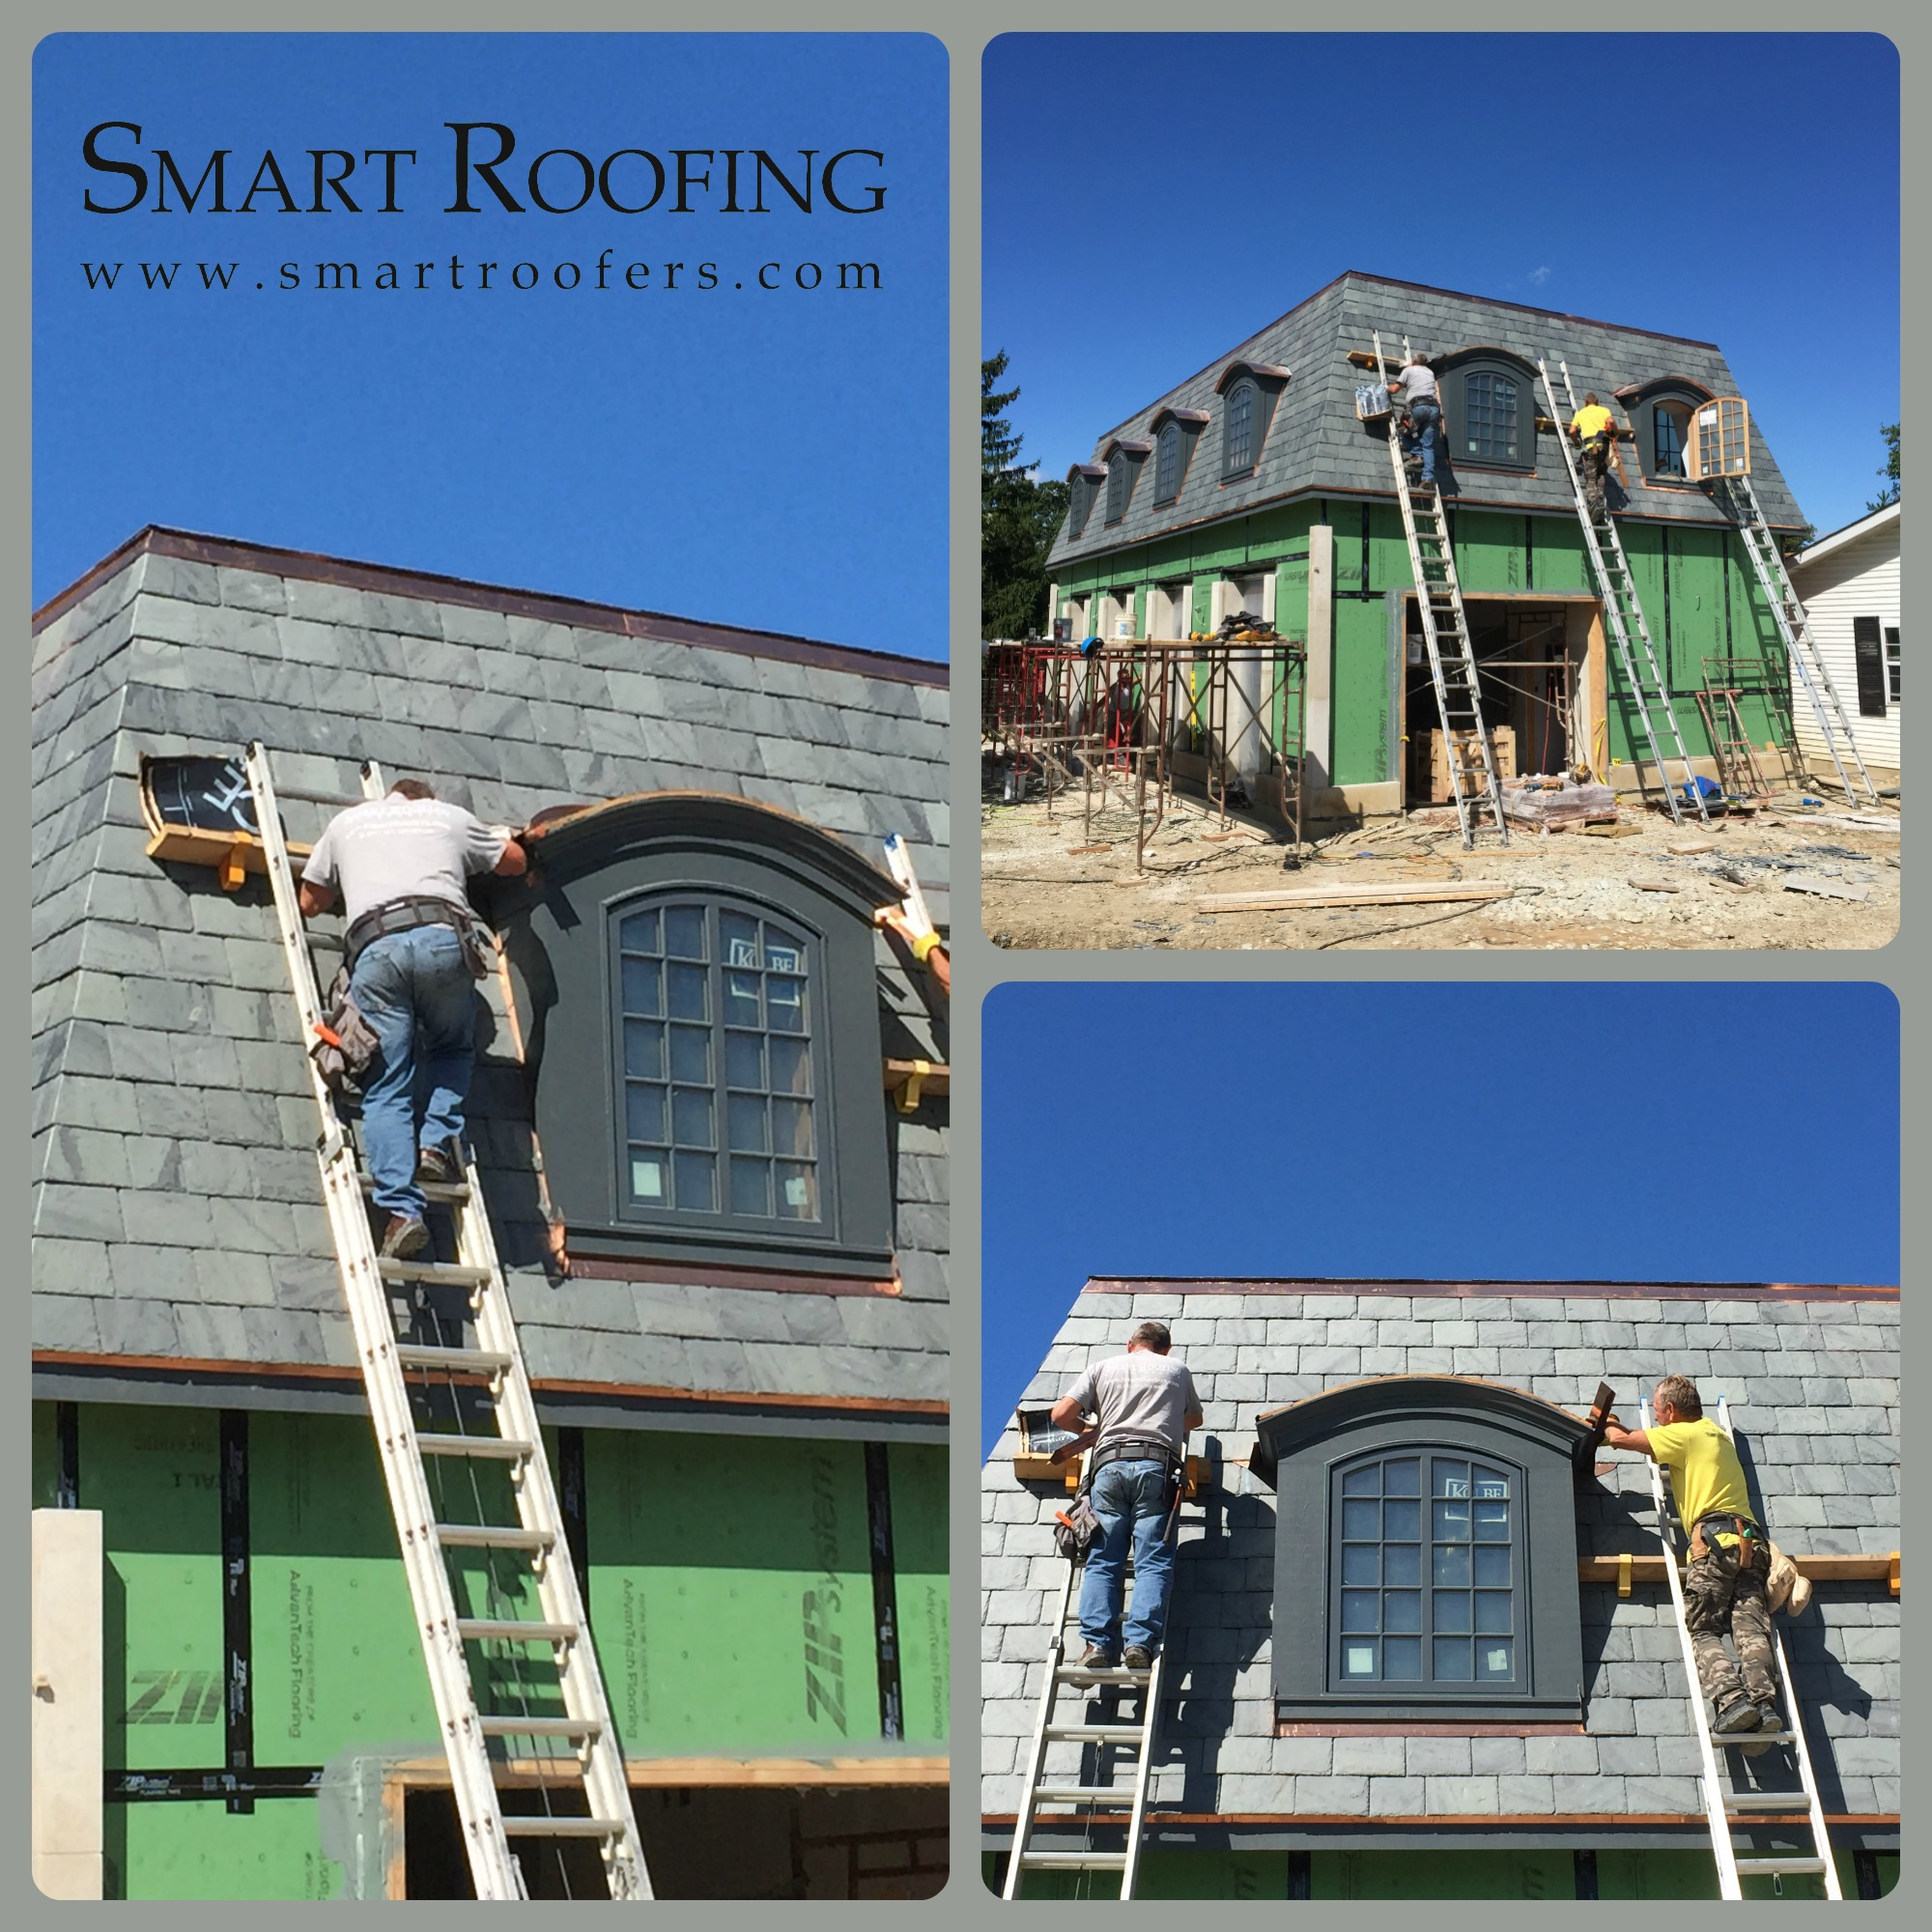 Smart Roofing Roofing And Place Reenaonline Com